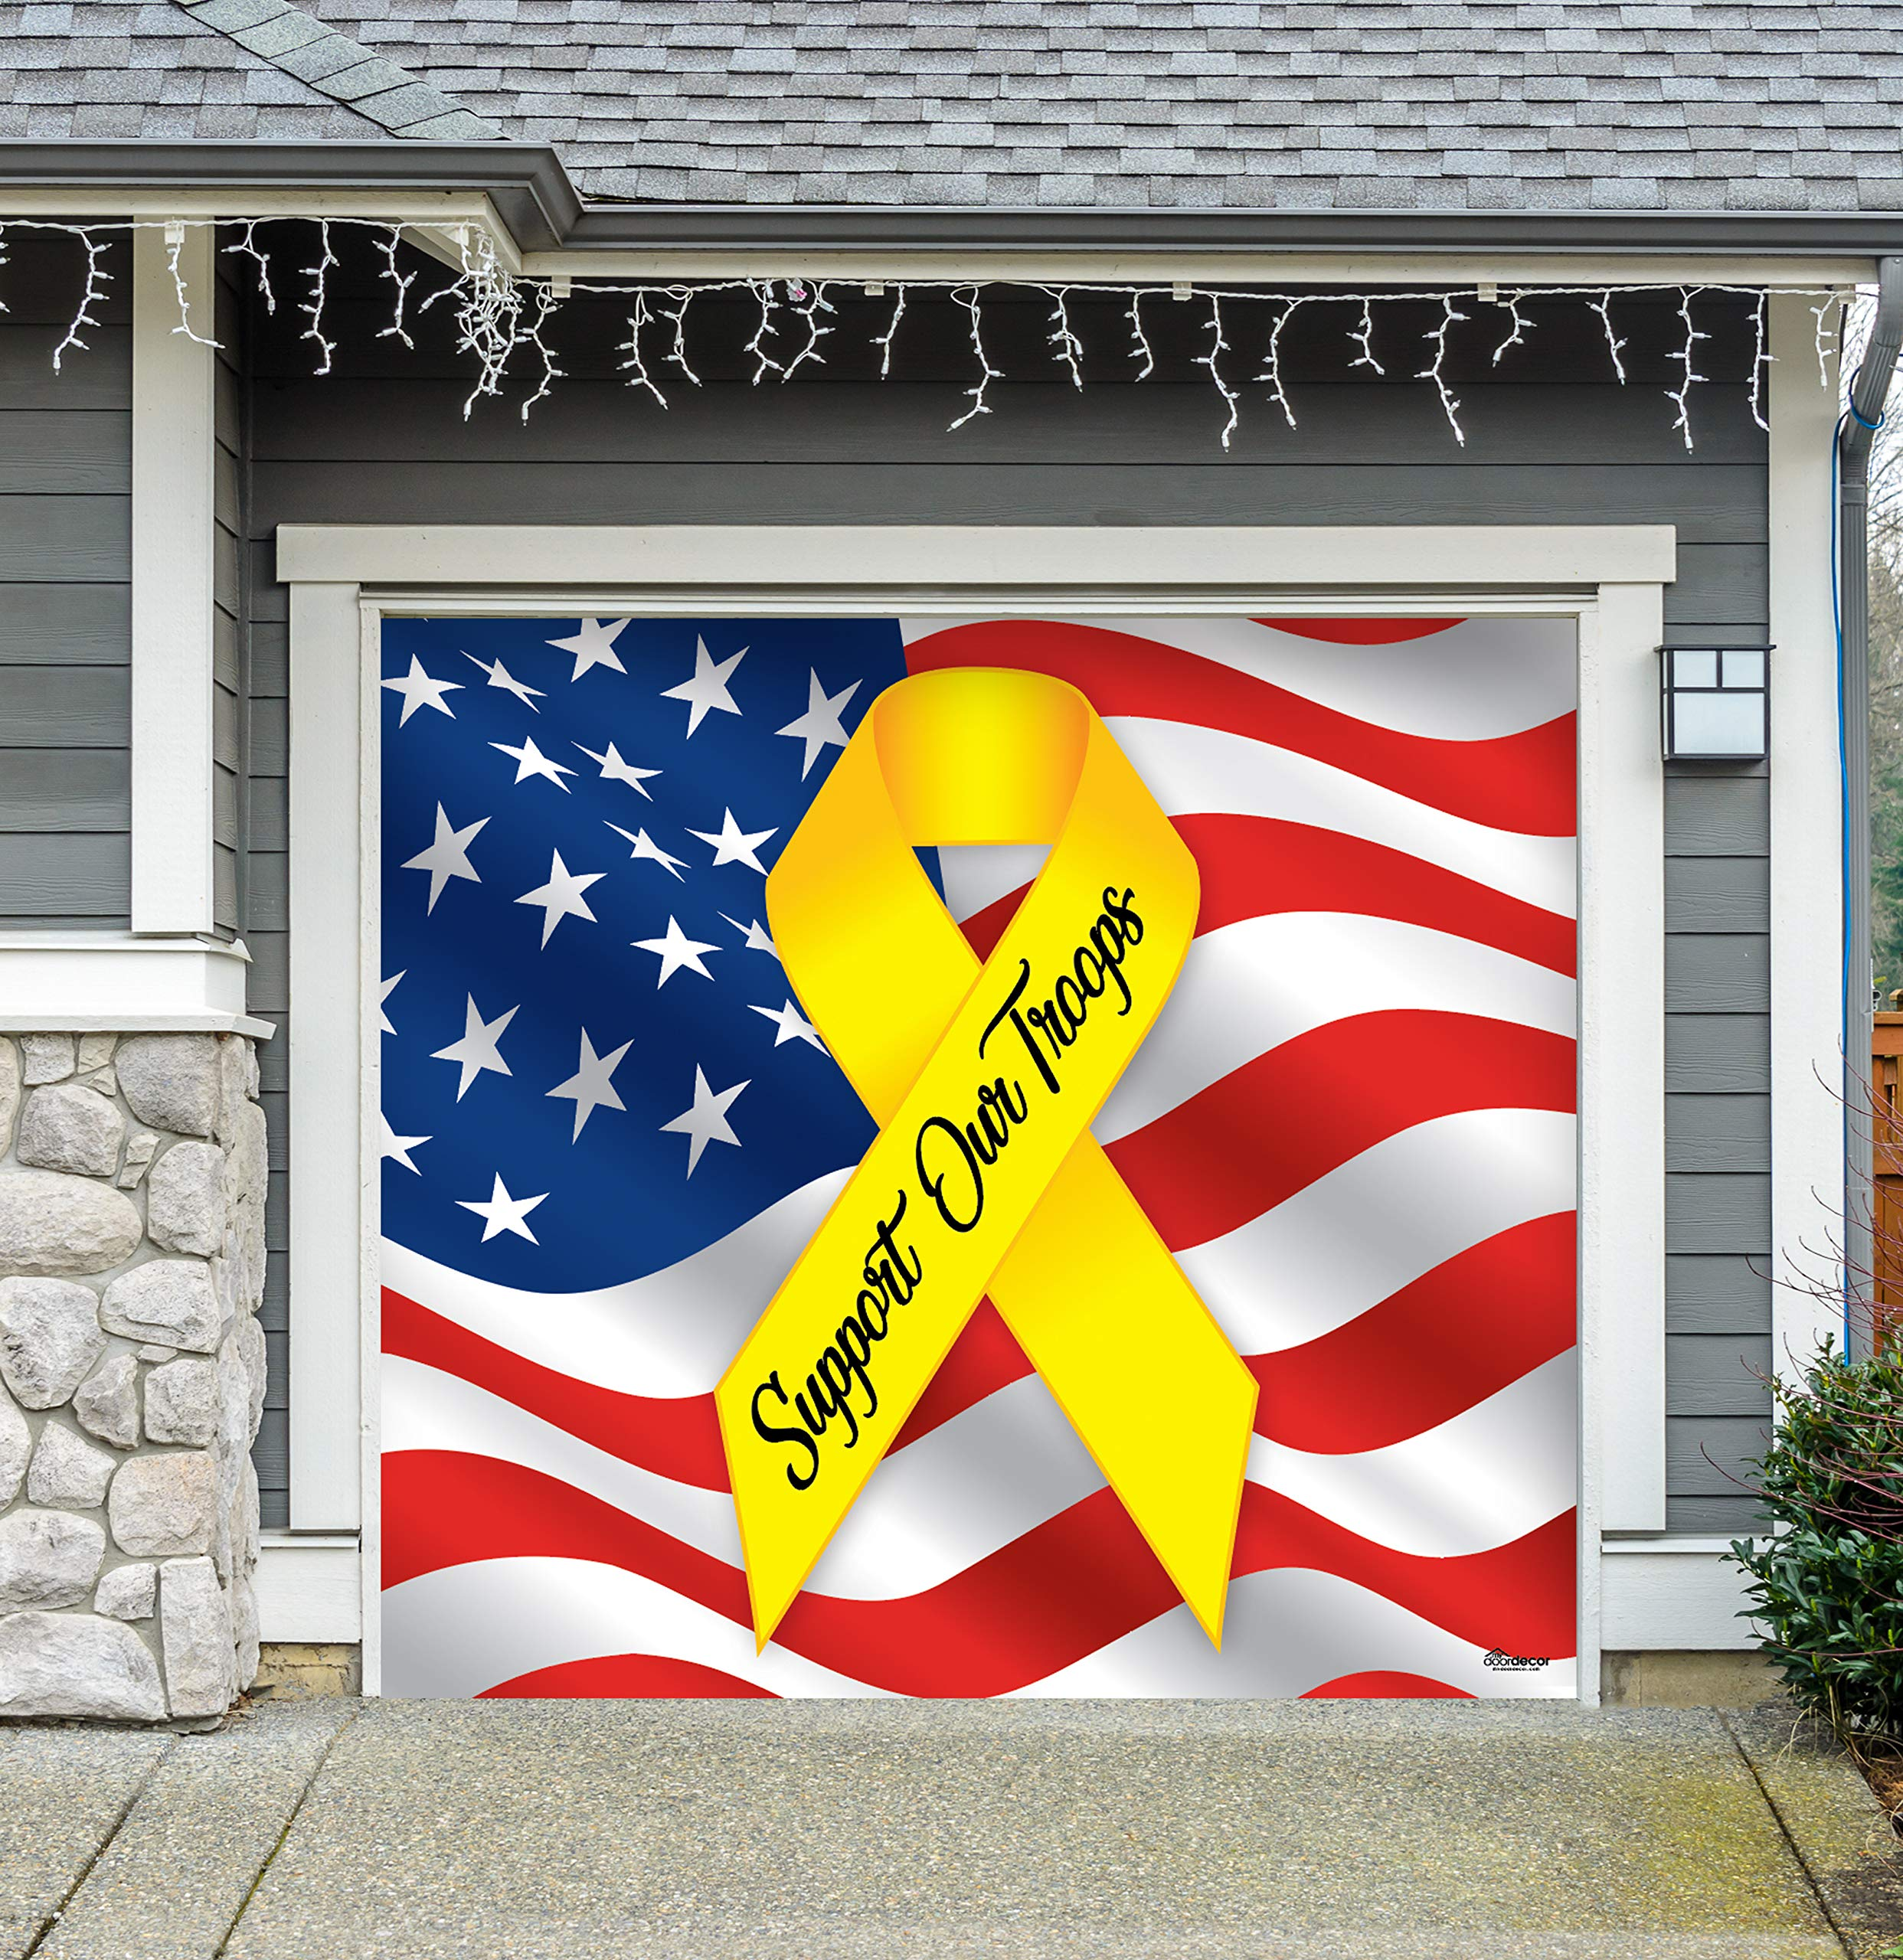 Victory Corps Support Our Troops - Patriotic Holiday Garage Door Banner Mural Sign Décor 7'x 8' Car Garage - The Original Holiday Garage Door Banner Decor